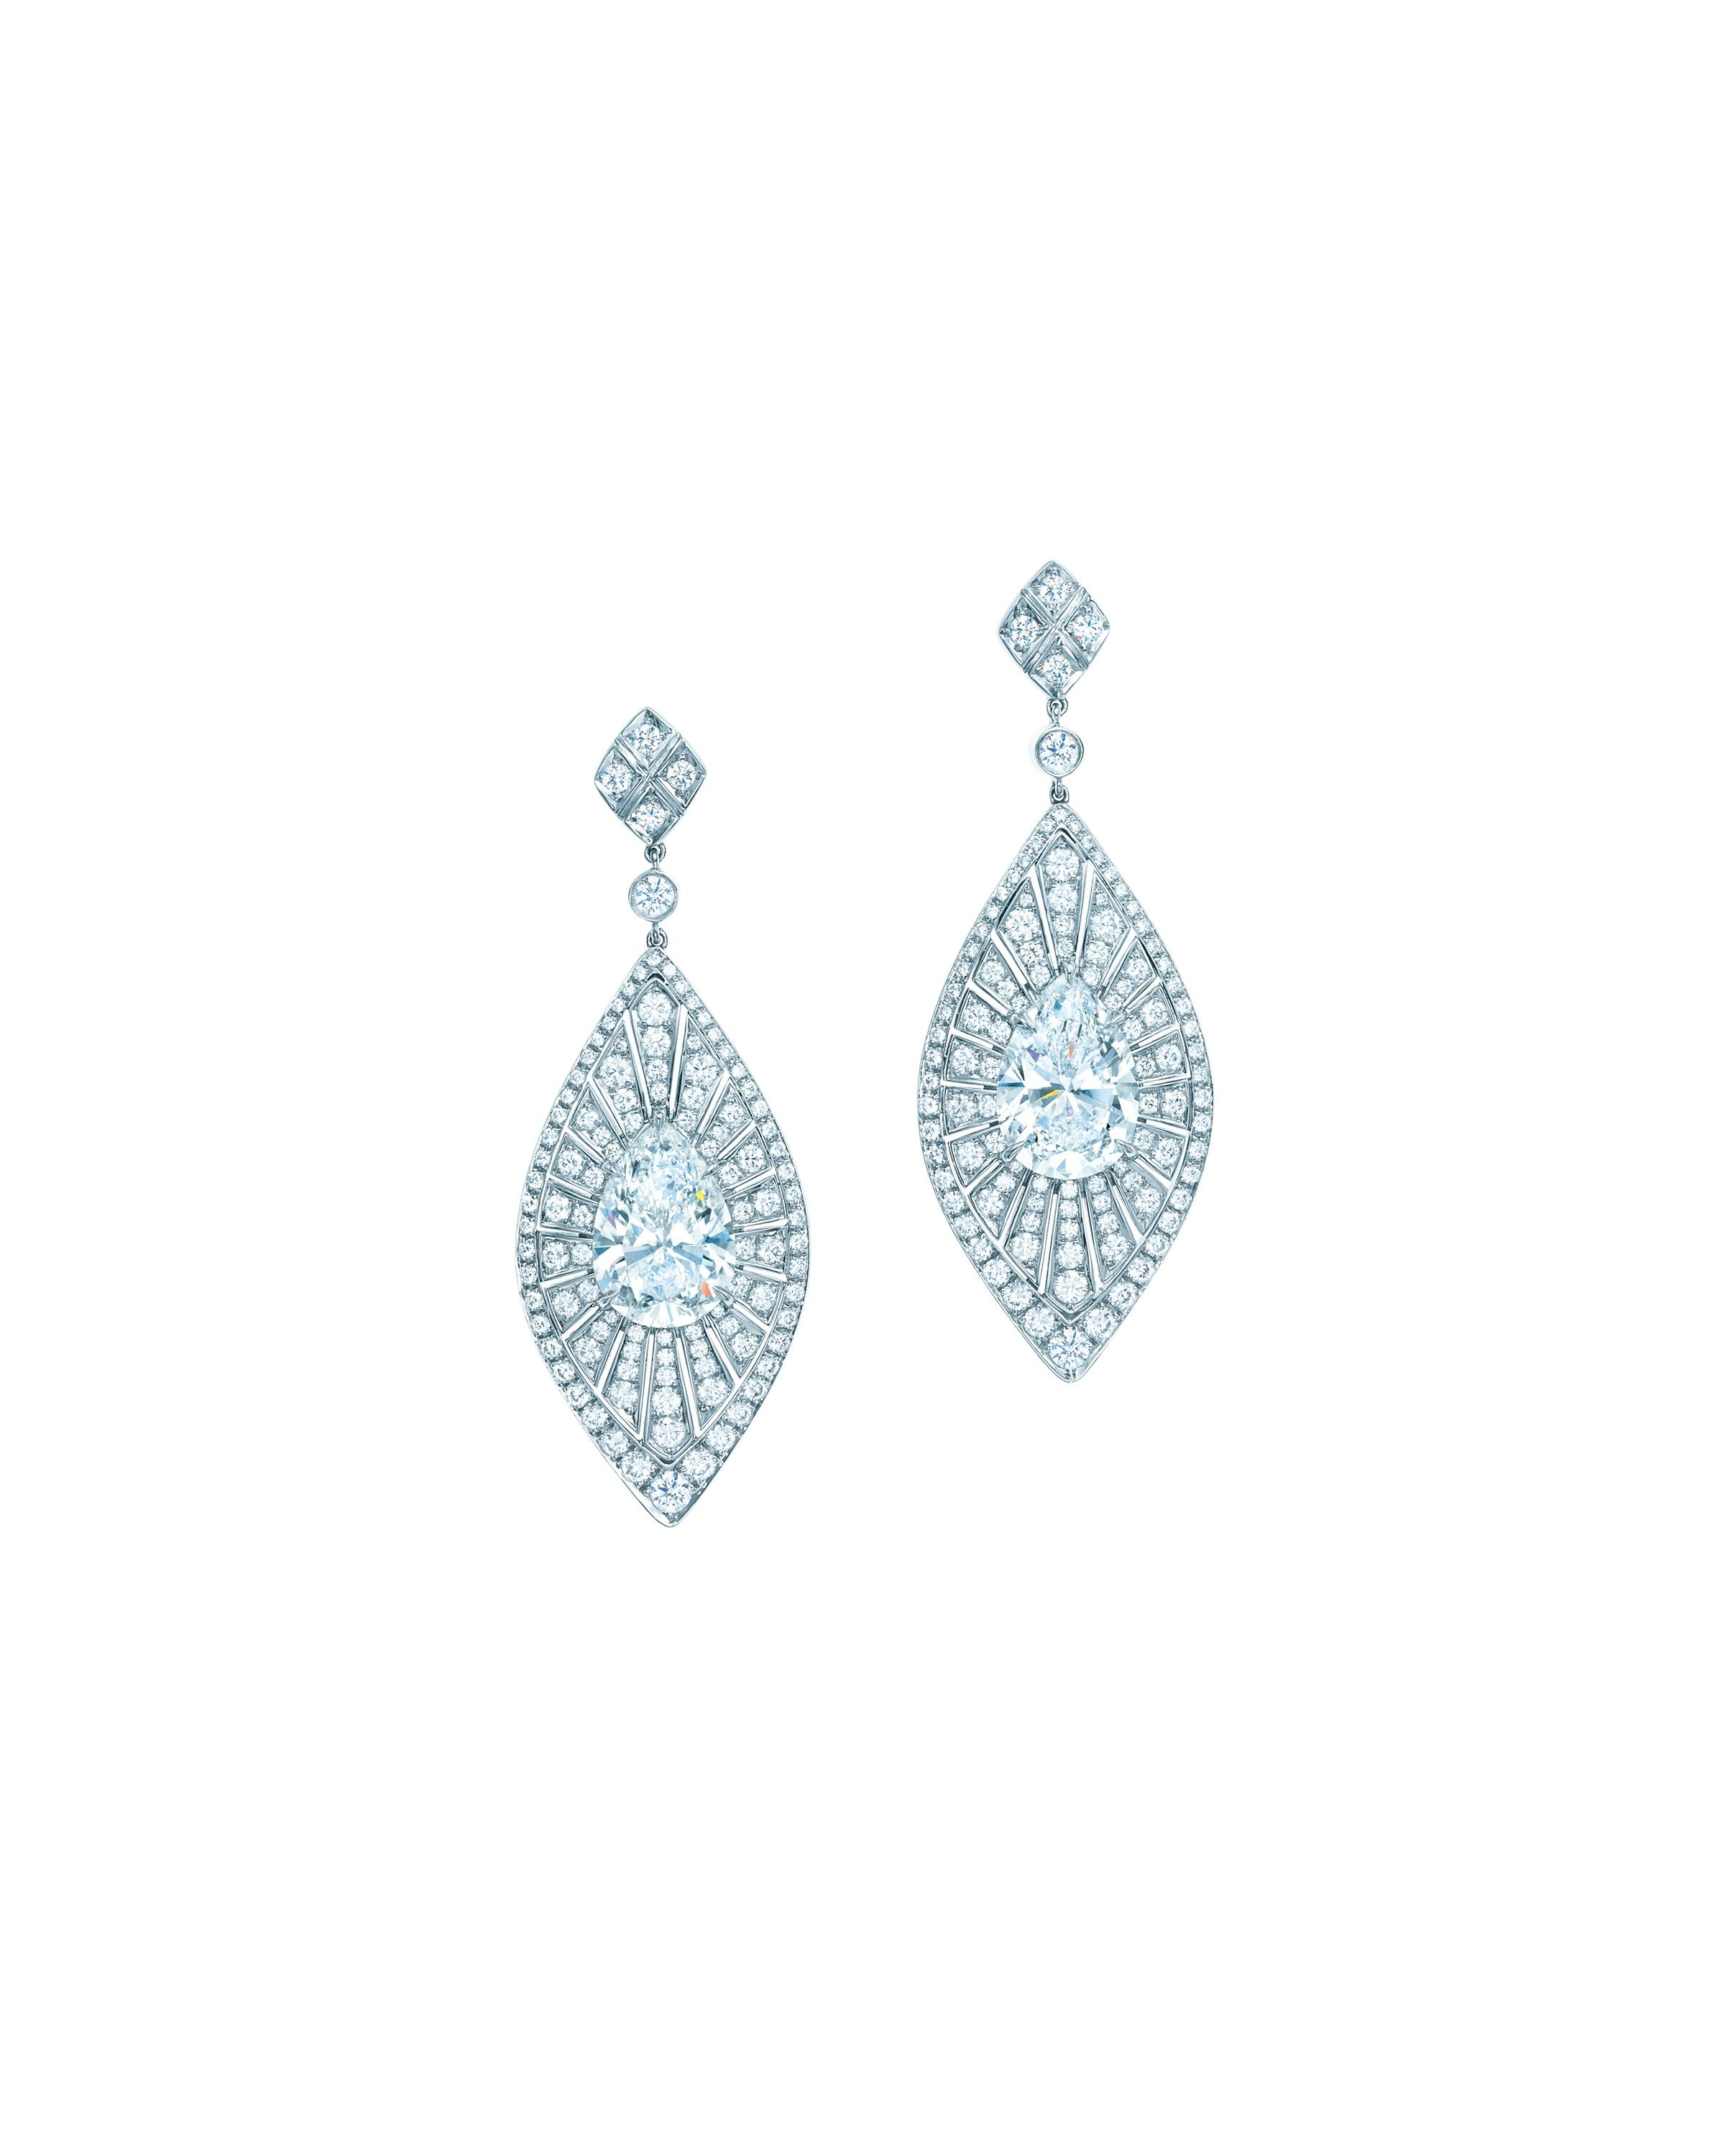 diamond jewels online christies s earrings co nyr christie tiffany fireworks